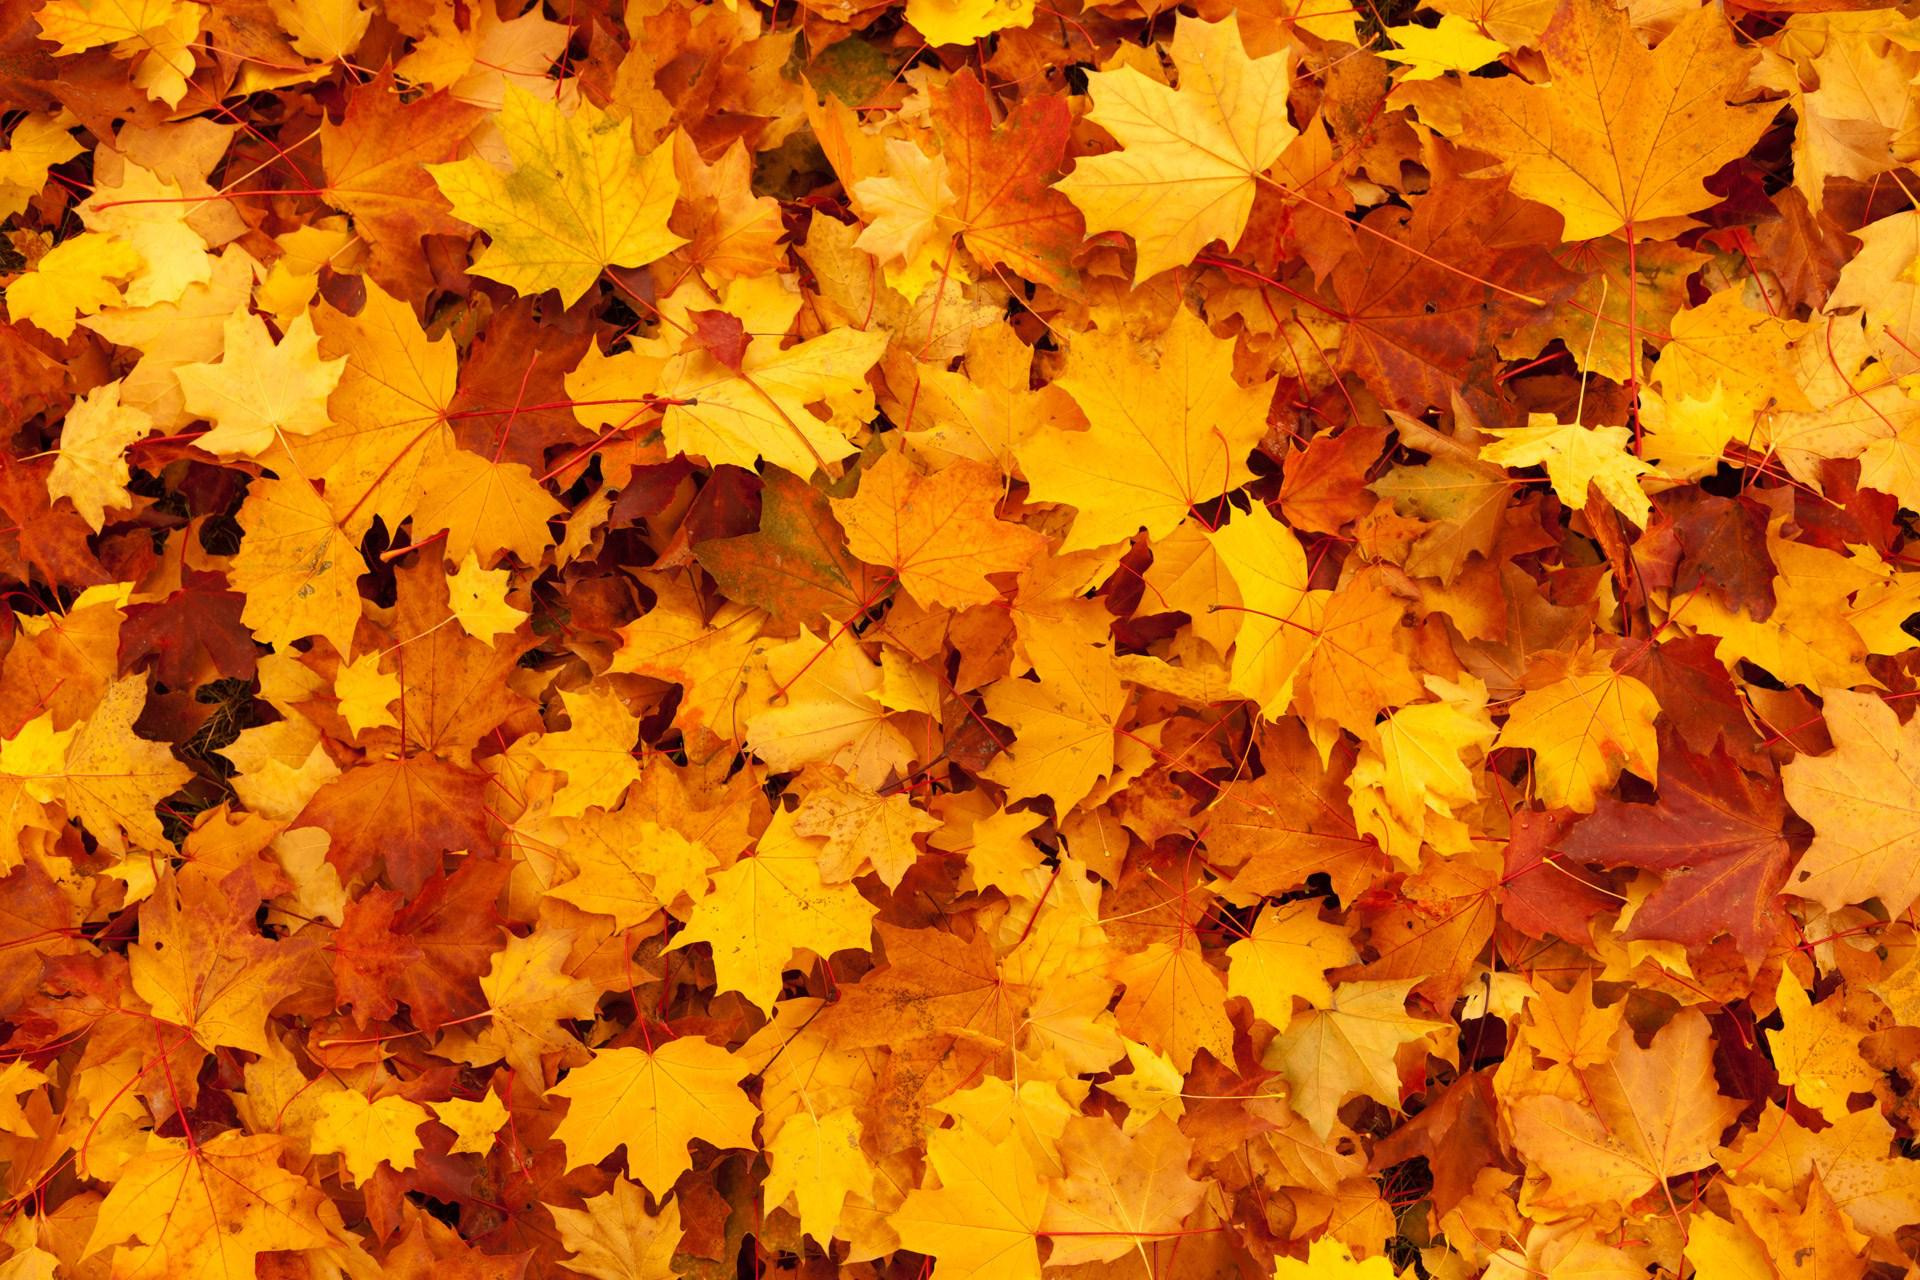 Autumn Leaves Falling Hd Wallpaper Hd Leaves Background Fresh Wallpaper Download Free 140105